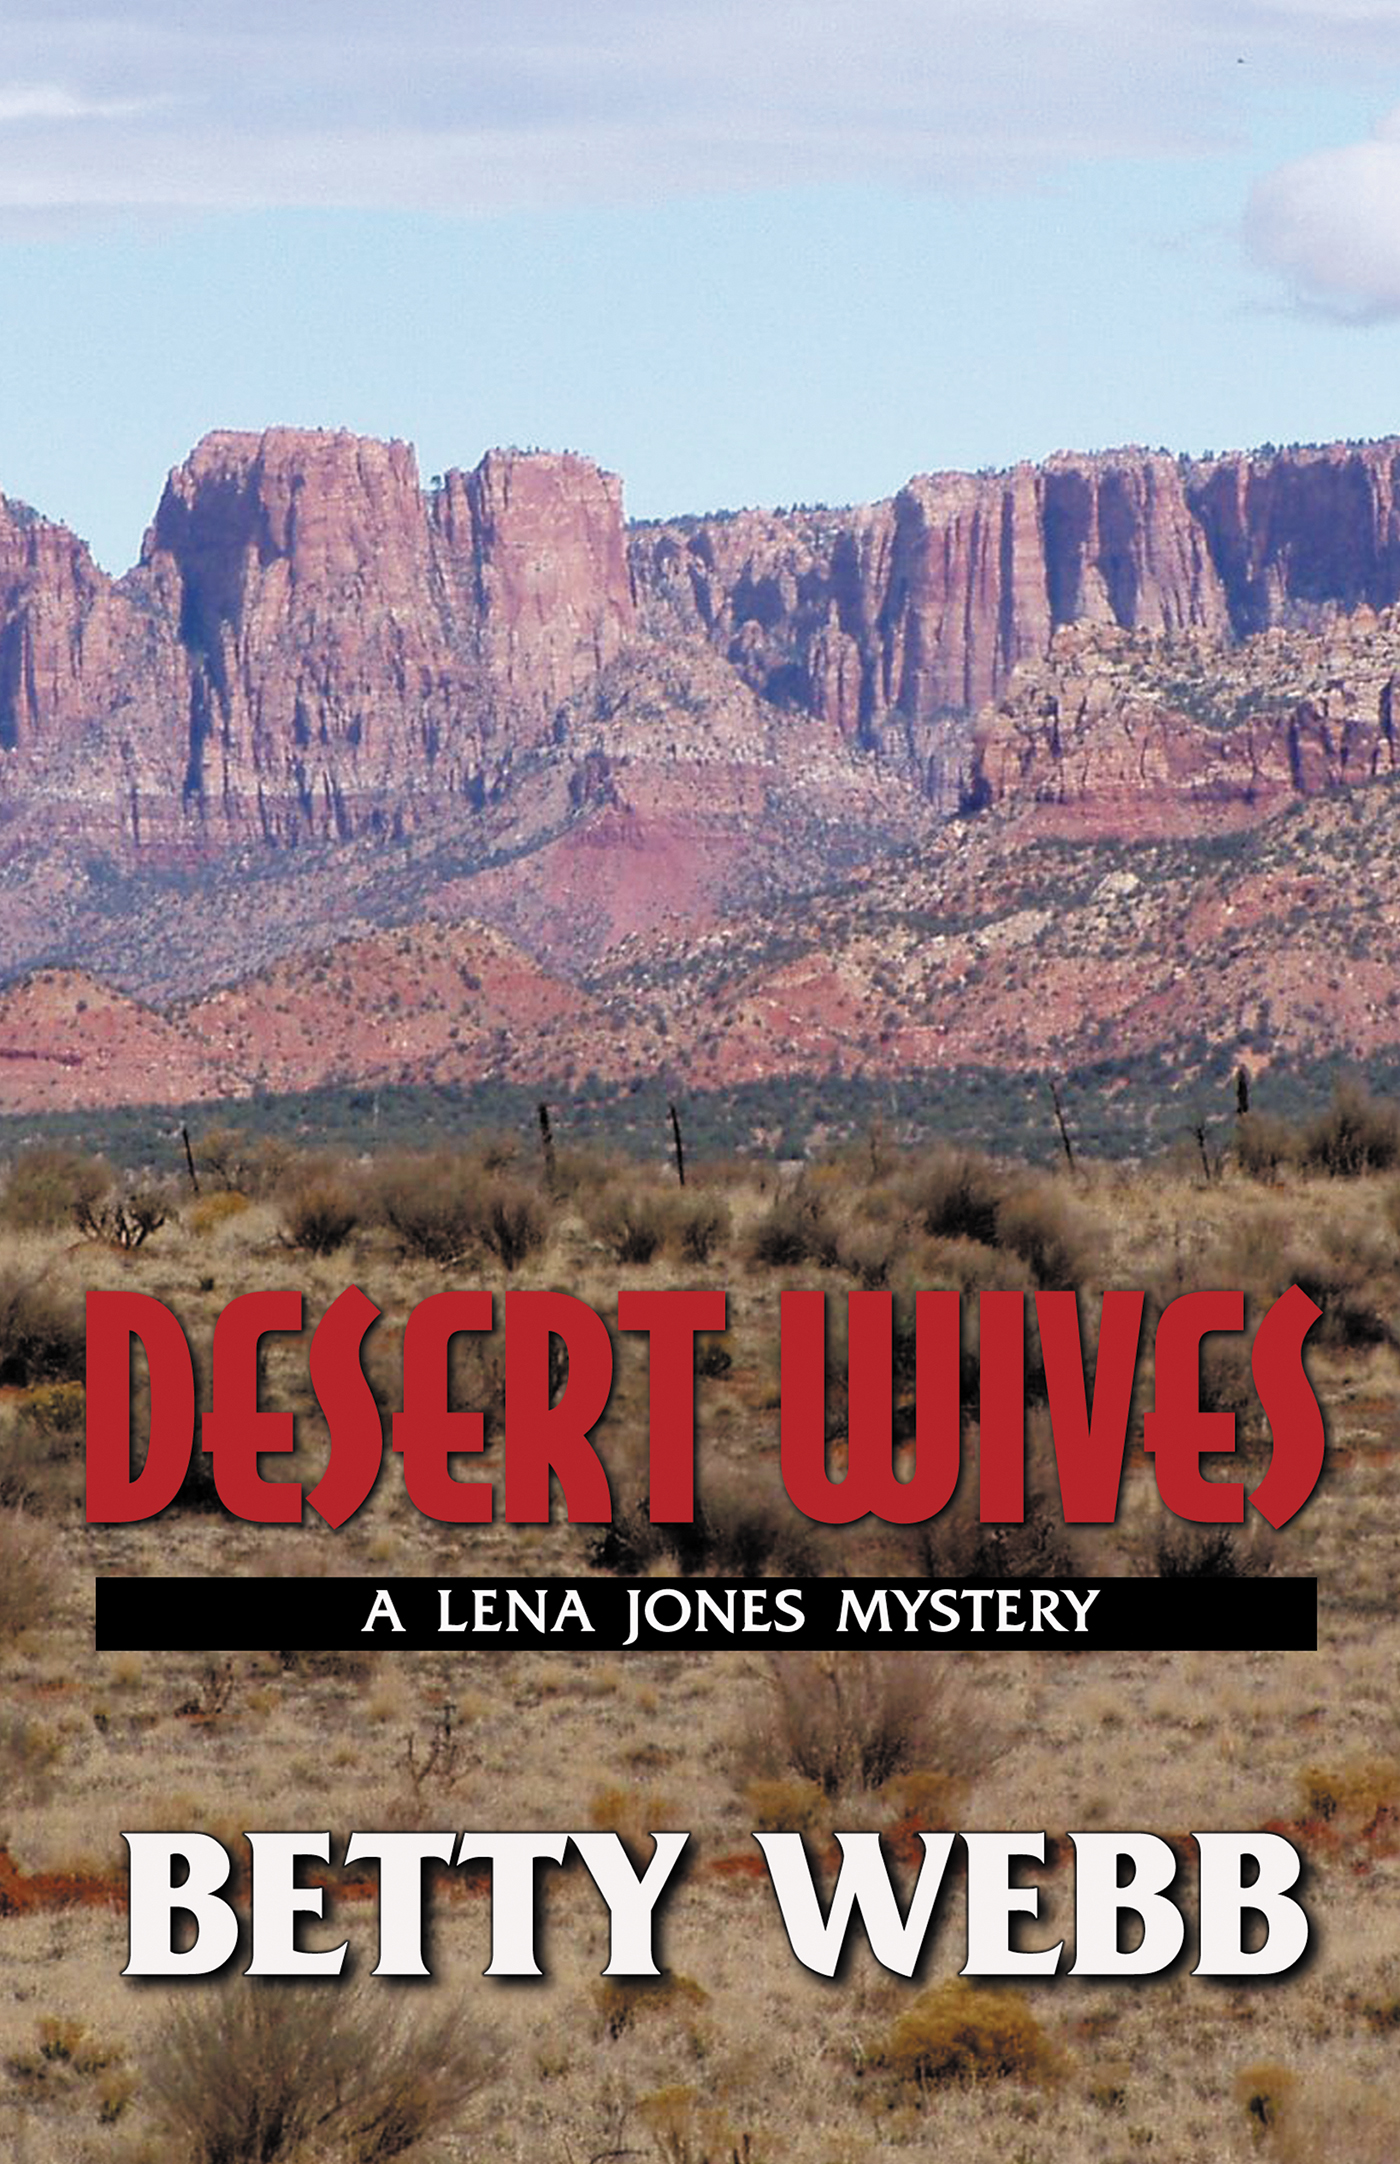 Desert wives : a Lena Jones mystery